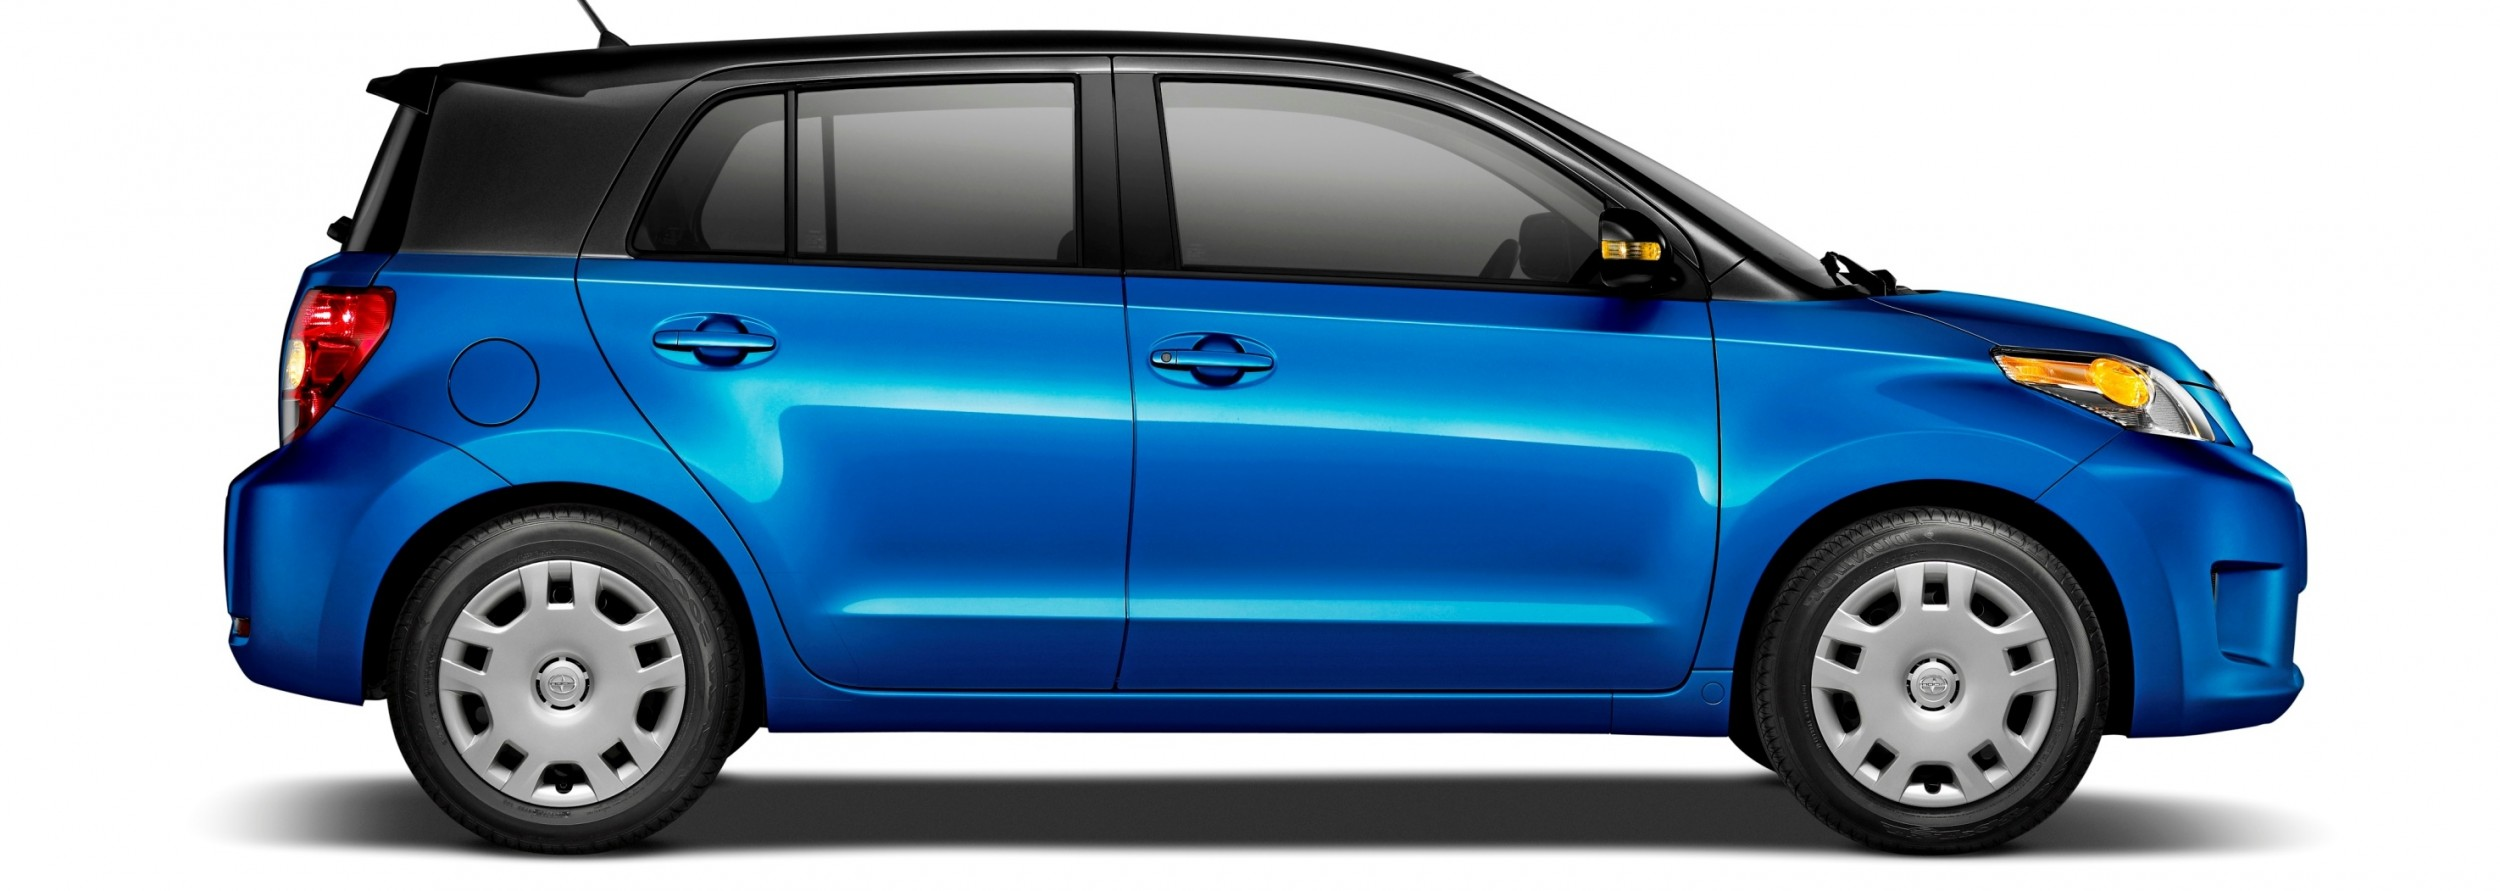 Scion xD 2014 #11